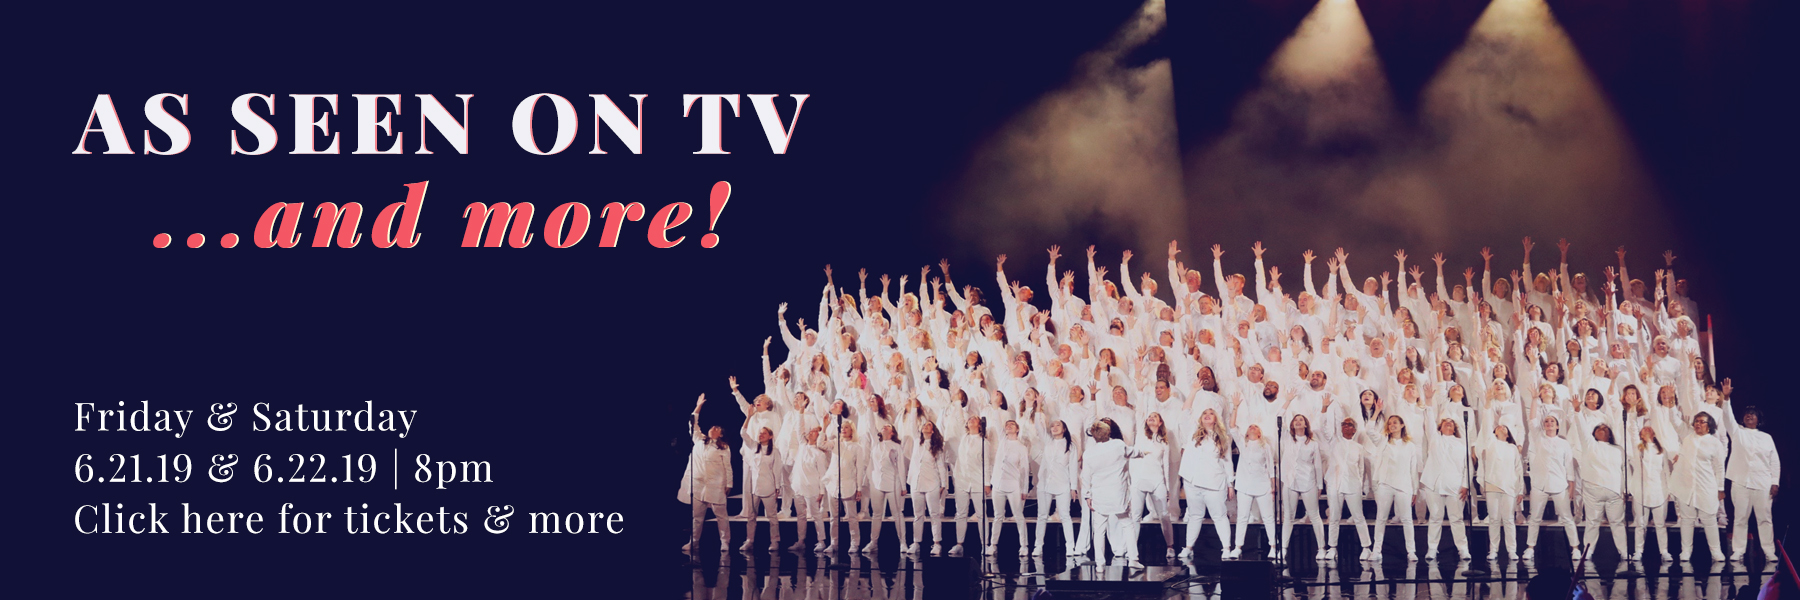 As Seen on TV...and More! Angel City Chorale in concert, June 21 and 22, 2019